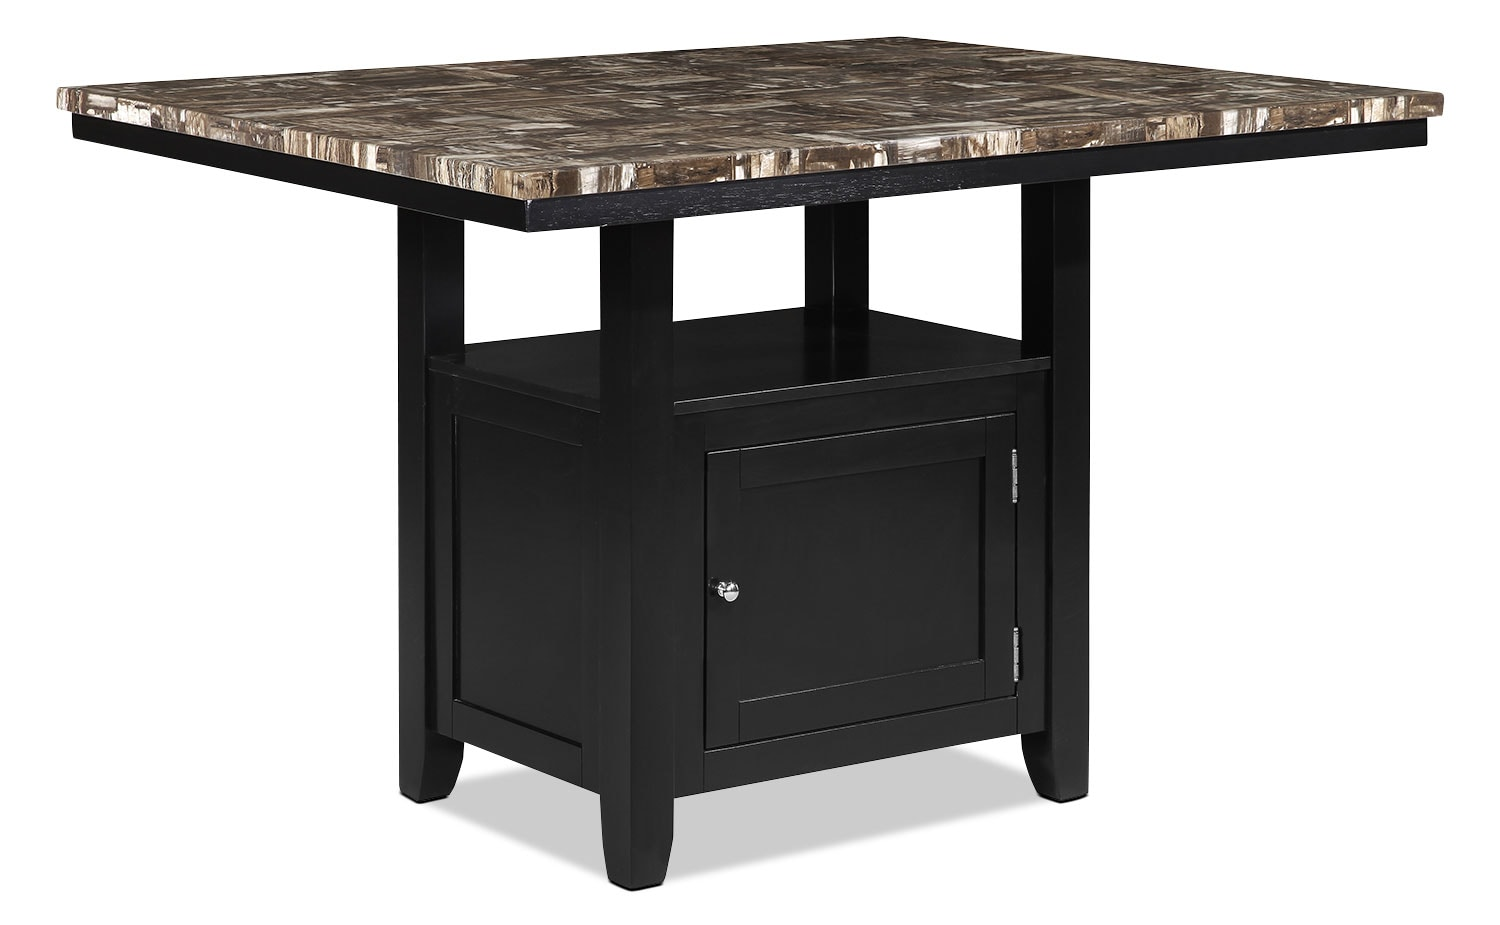 Vale Counter-Height Dining Table with Storage